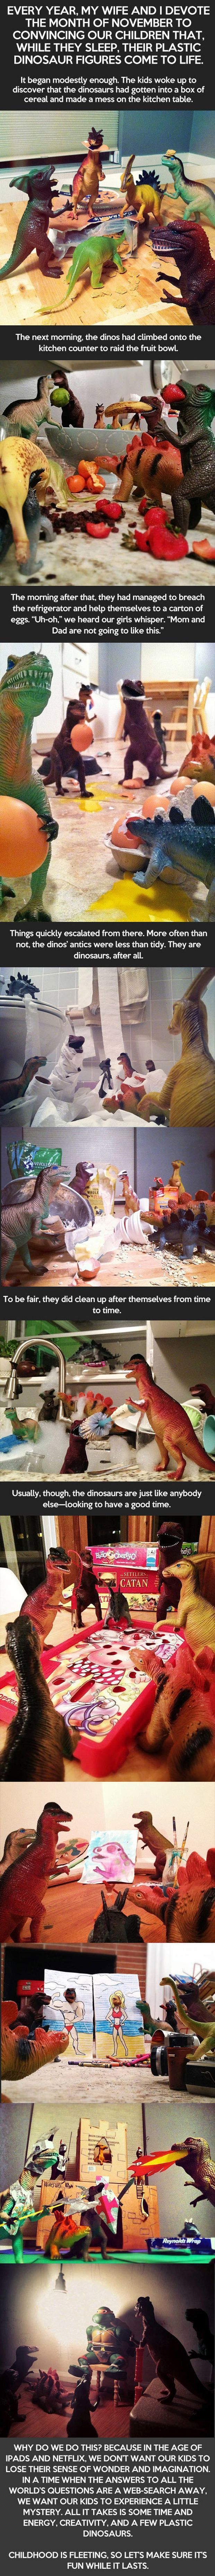 Funny Parents Who Convince Their Kids That Their Toy Dinosaurs Are Alive - 11 Pics #dinosaurpics Funny Parents Who Convince Their Kids That Their Toy Dinosaurs Are Alive – 11 Pics #dinosaurpics Funny Parents Who Convince Their Kids That Their Toy Dinosaurs Are Alive - 11 Pics #dinosaurpics Funny Parents Who Convince Their Kids That Their Toy Dinosaurs Are Alive – 11 Pics #dinosaurpics Funny Parents Who Convince Their Kids That Their Toy Dinosaurs Are Alive - 11 Pics #dinosaurpics Funny Paren #dinosaurpics